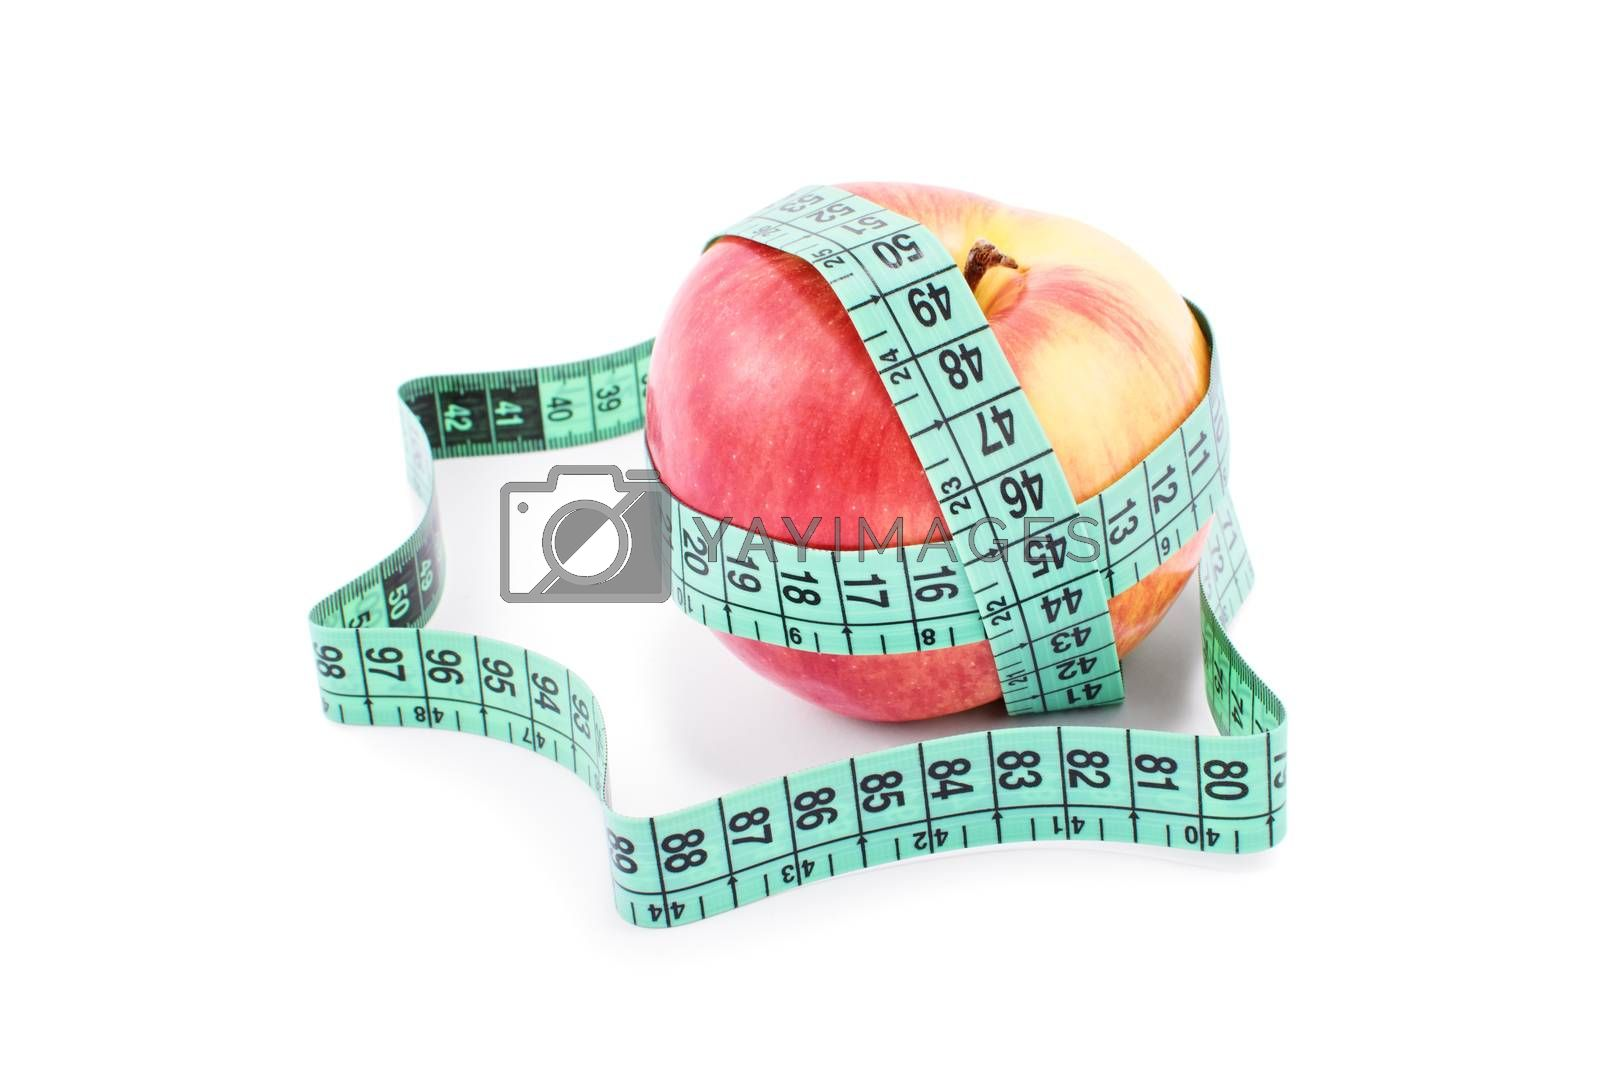 Diet, healthy eating, weight loss concept. Measuring tape wrapped around an apple, isolated on white background. Symbol of vitamin diet, slim shape and healthy food.